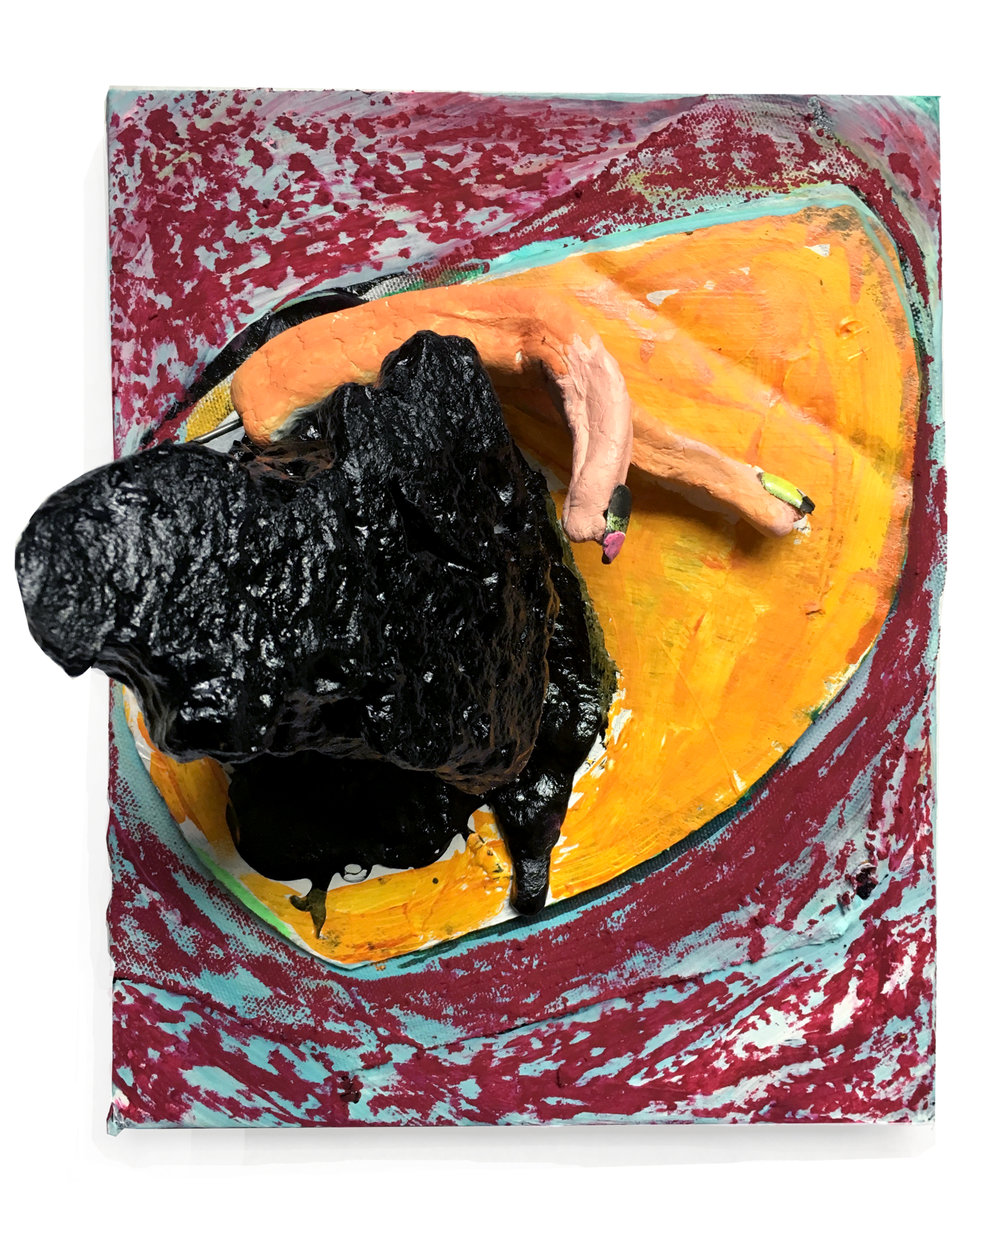 "Crystal and Claws (Orange and Tar)  8"" X 10"" Tar, foam, clay, collage, fake nails, crayon, mixed media on panel 2018"